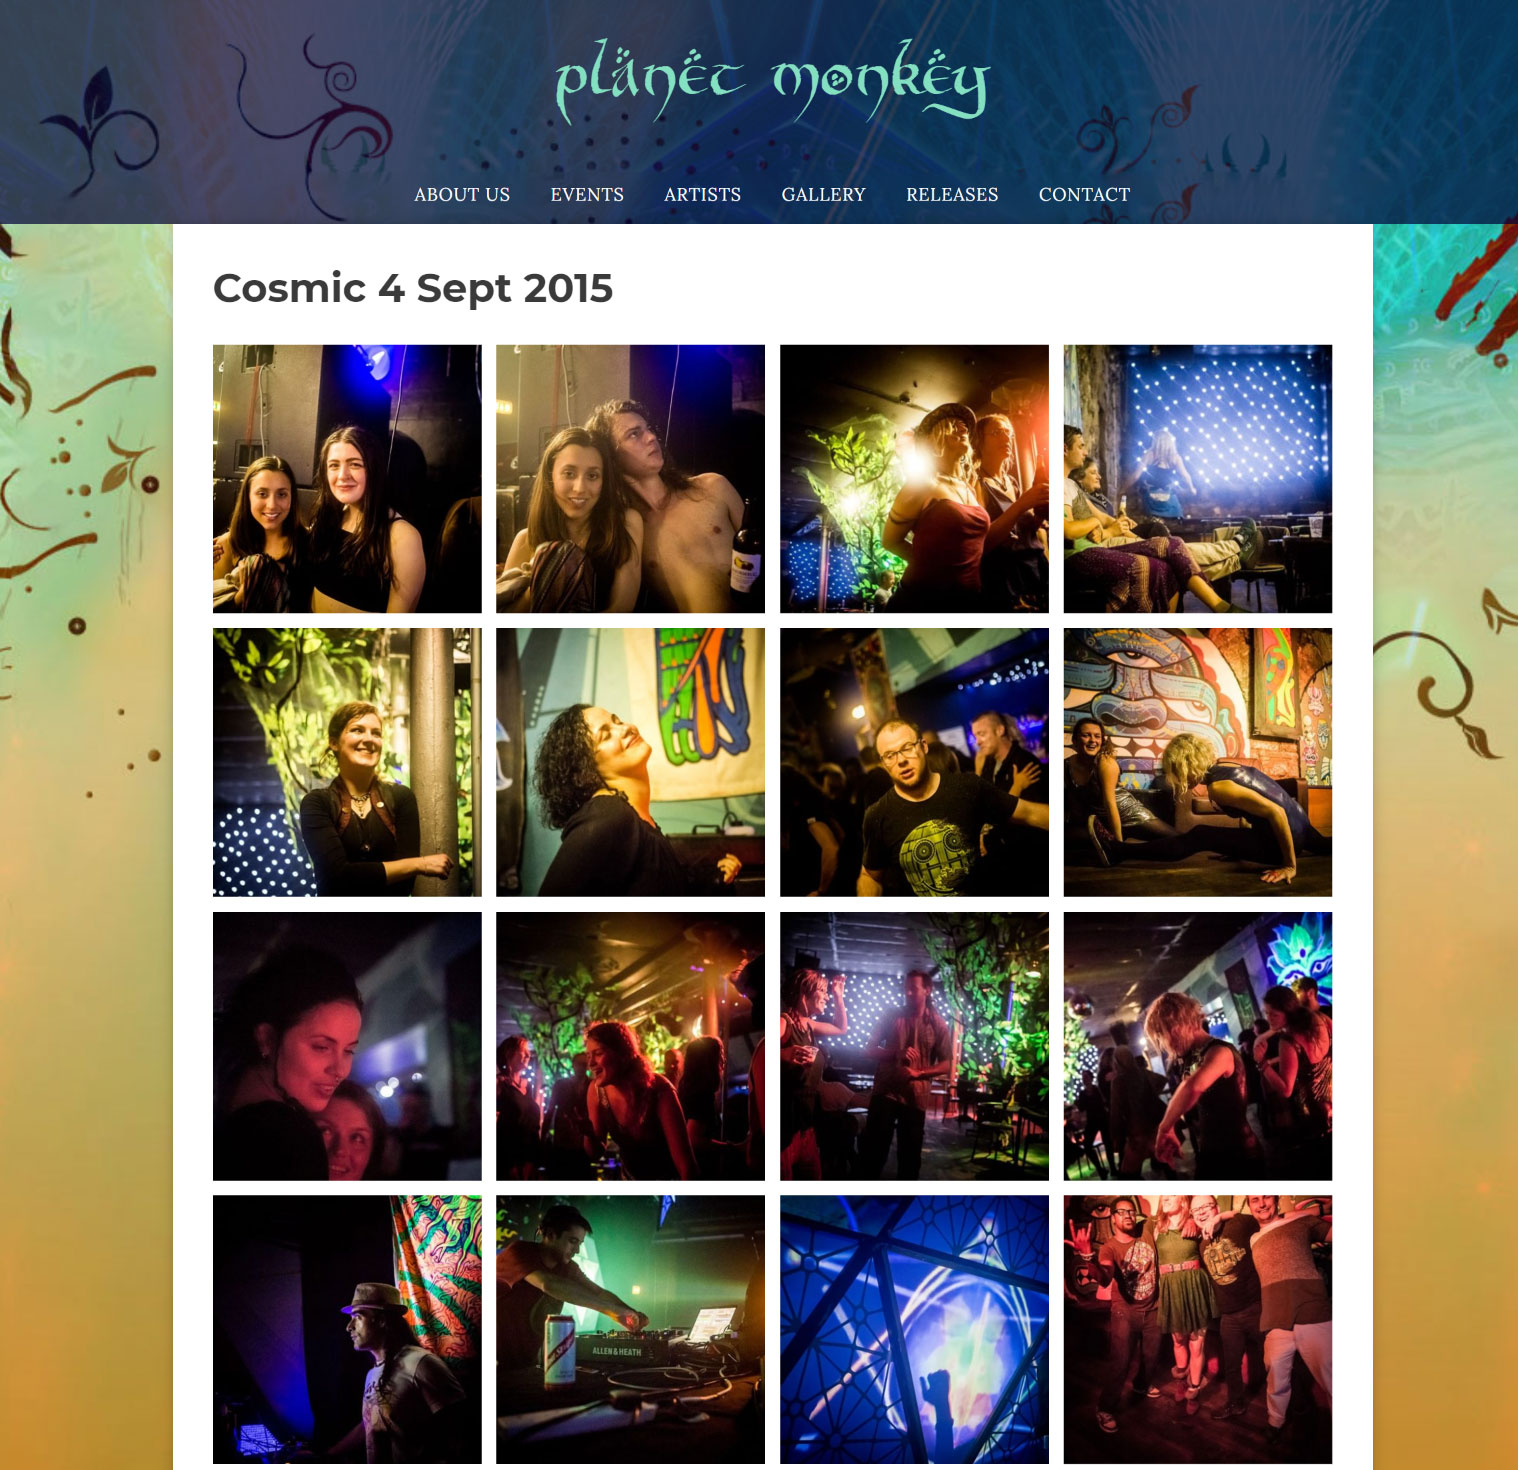 Planet Monkey artists page image